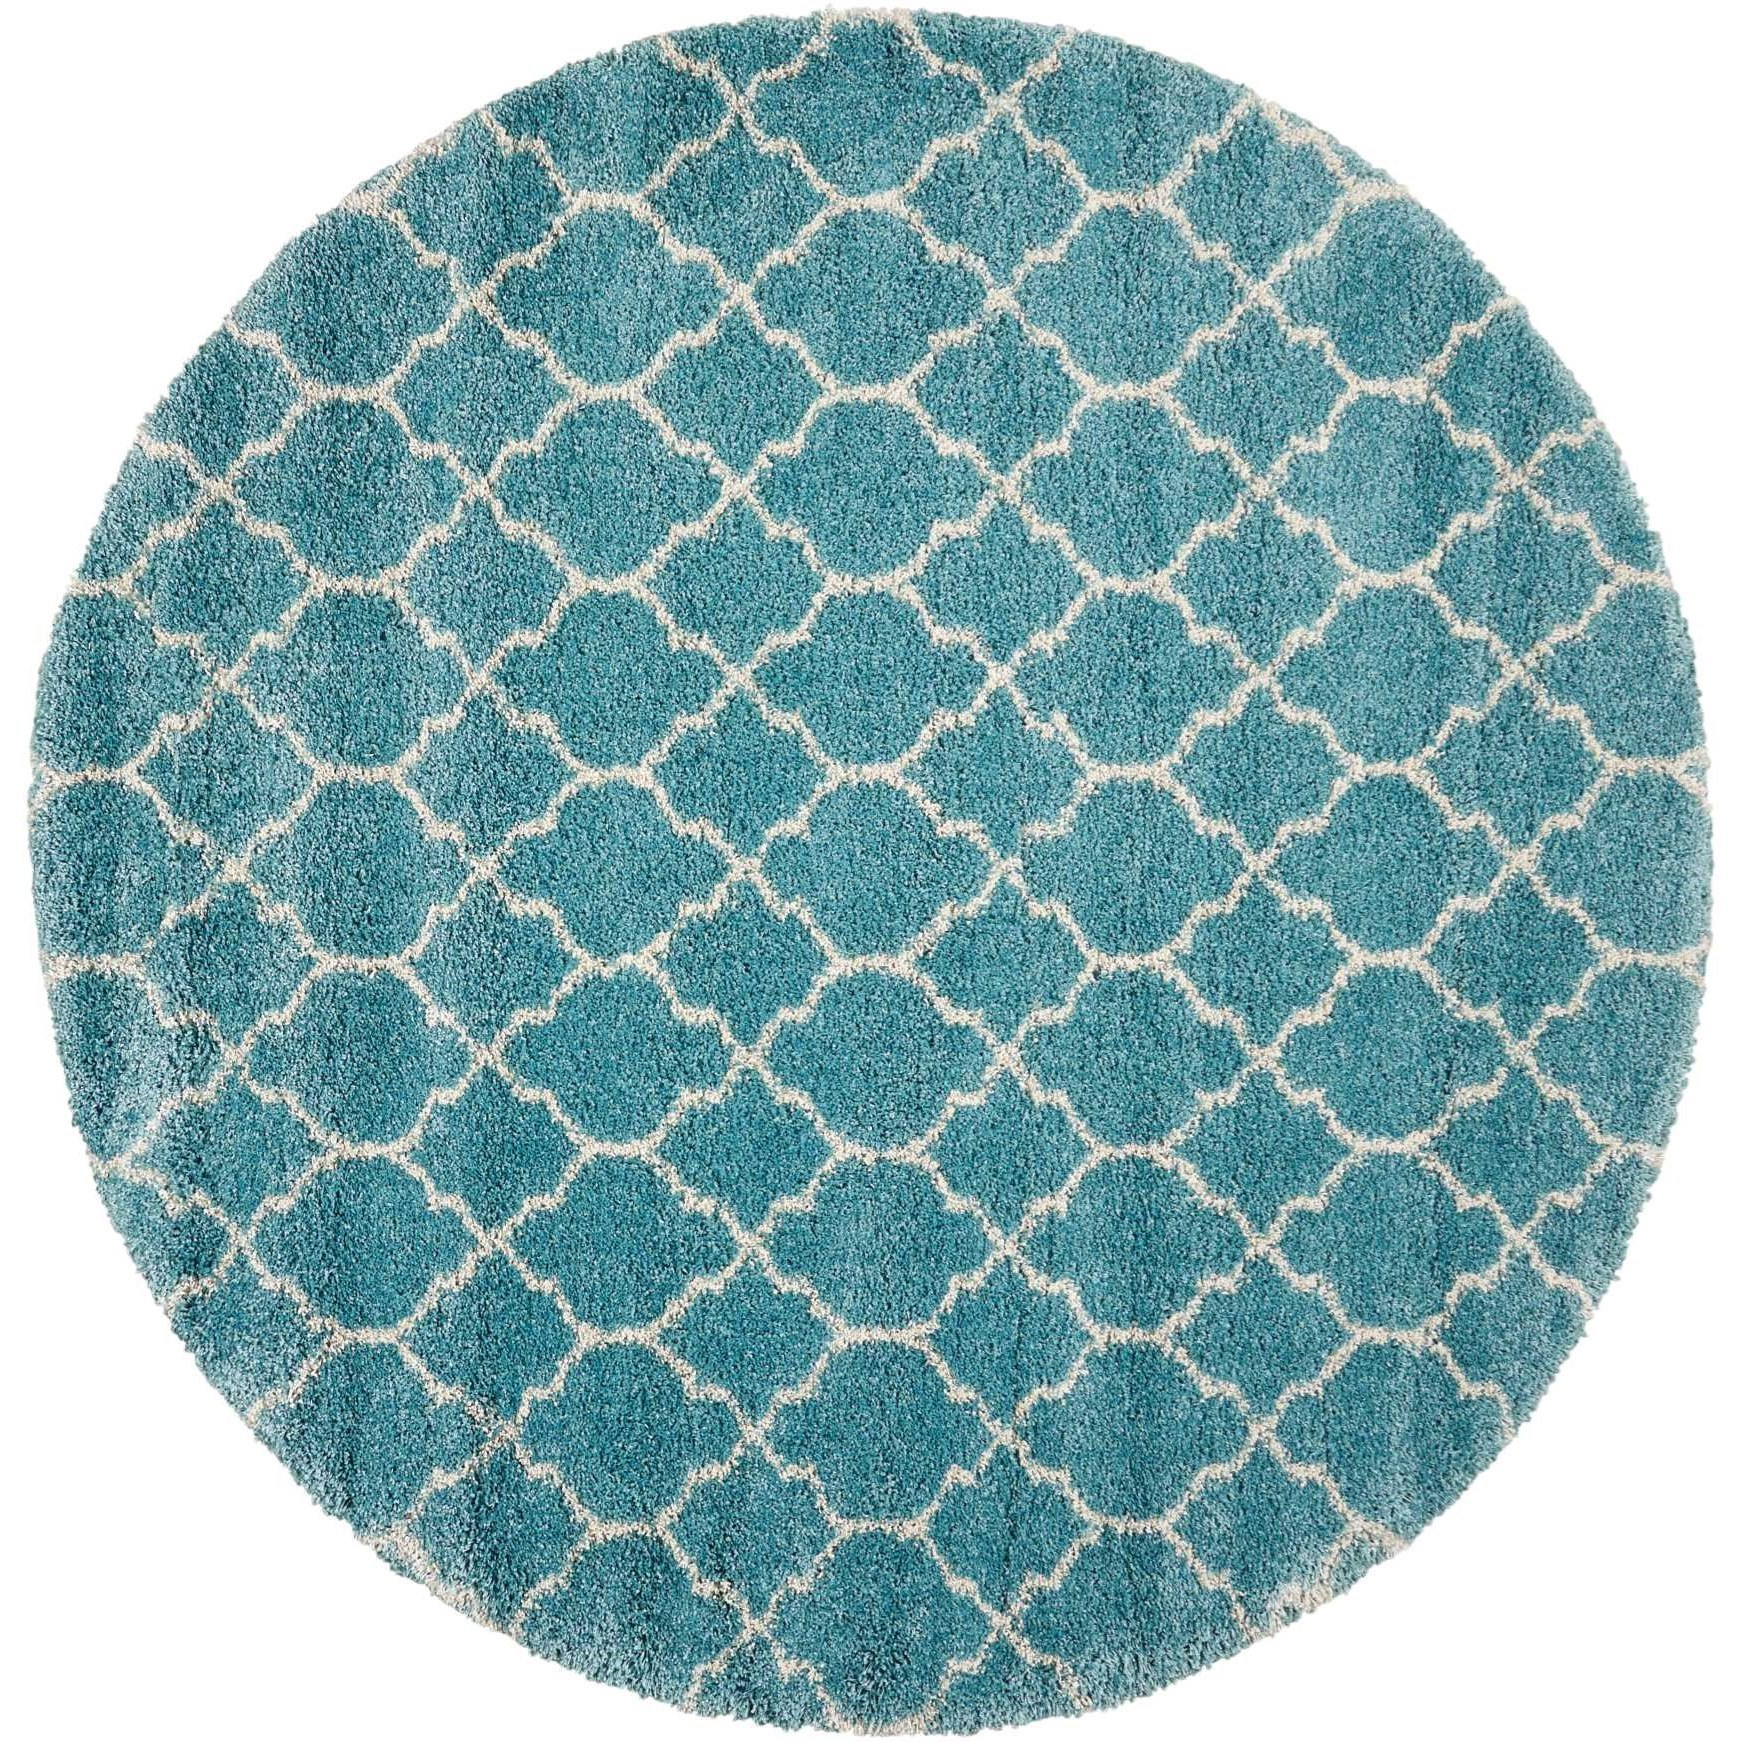 "Amore 7'10"" x 7'10"" Aqua Round Rug by Nourison at Sprintz Furniture"